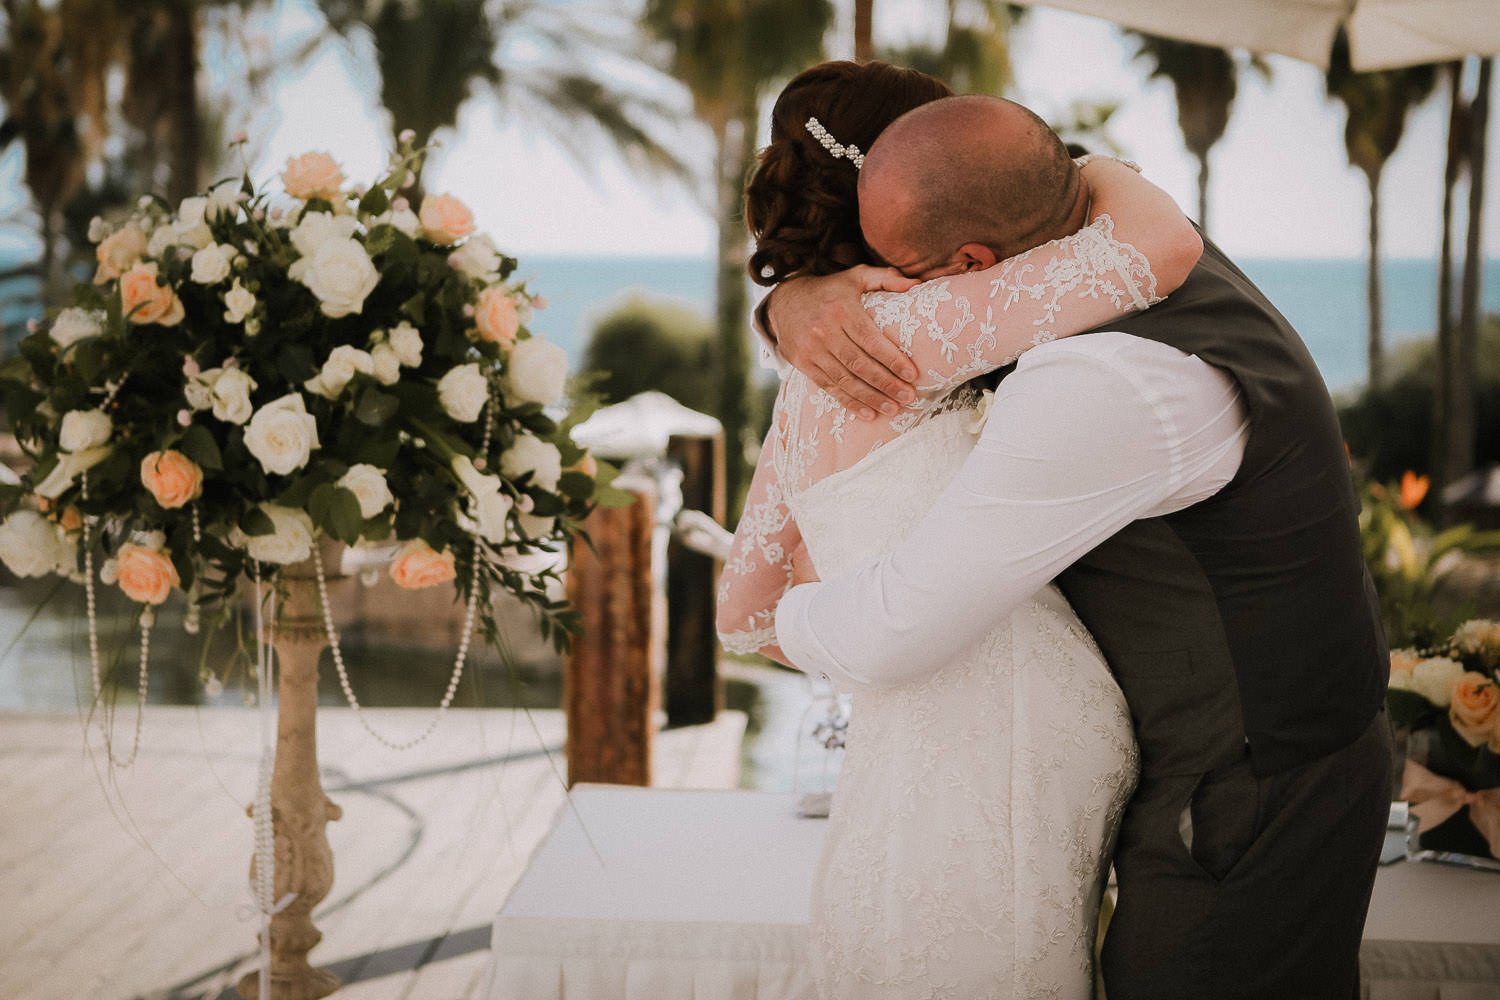 ANNABELLE HOTEL CYPRUS: A UNIQUE WEDDING STORY